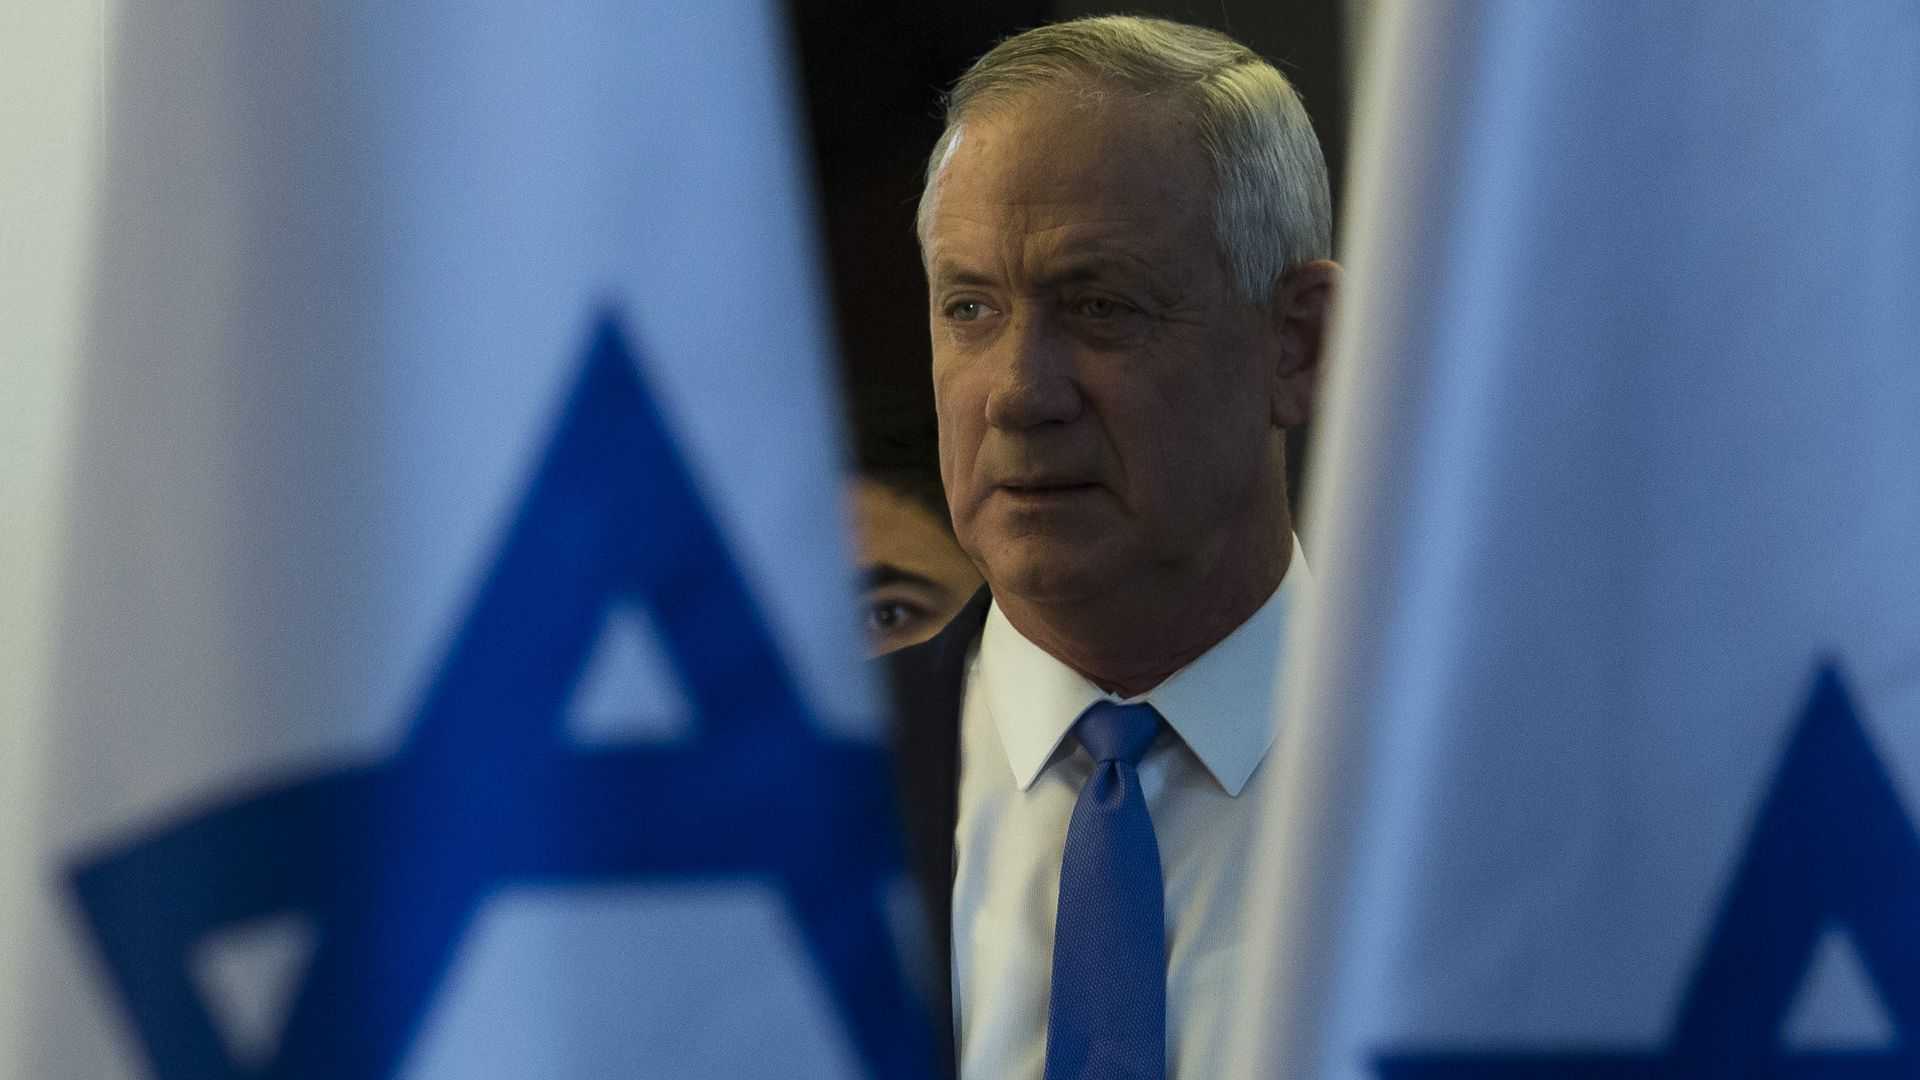 Israel's Netanyahu, Gantz take a break from campaigning to visit the White House